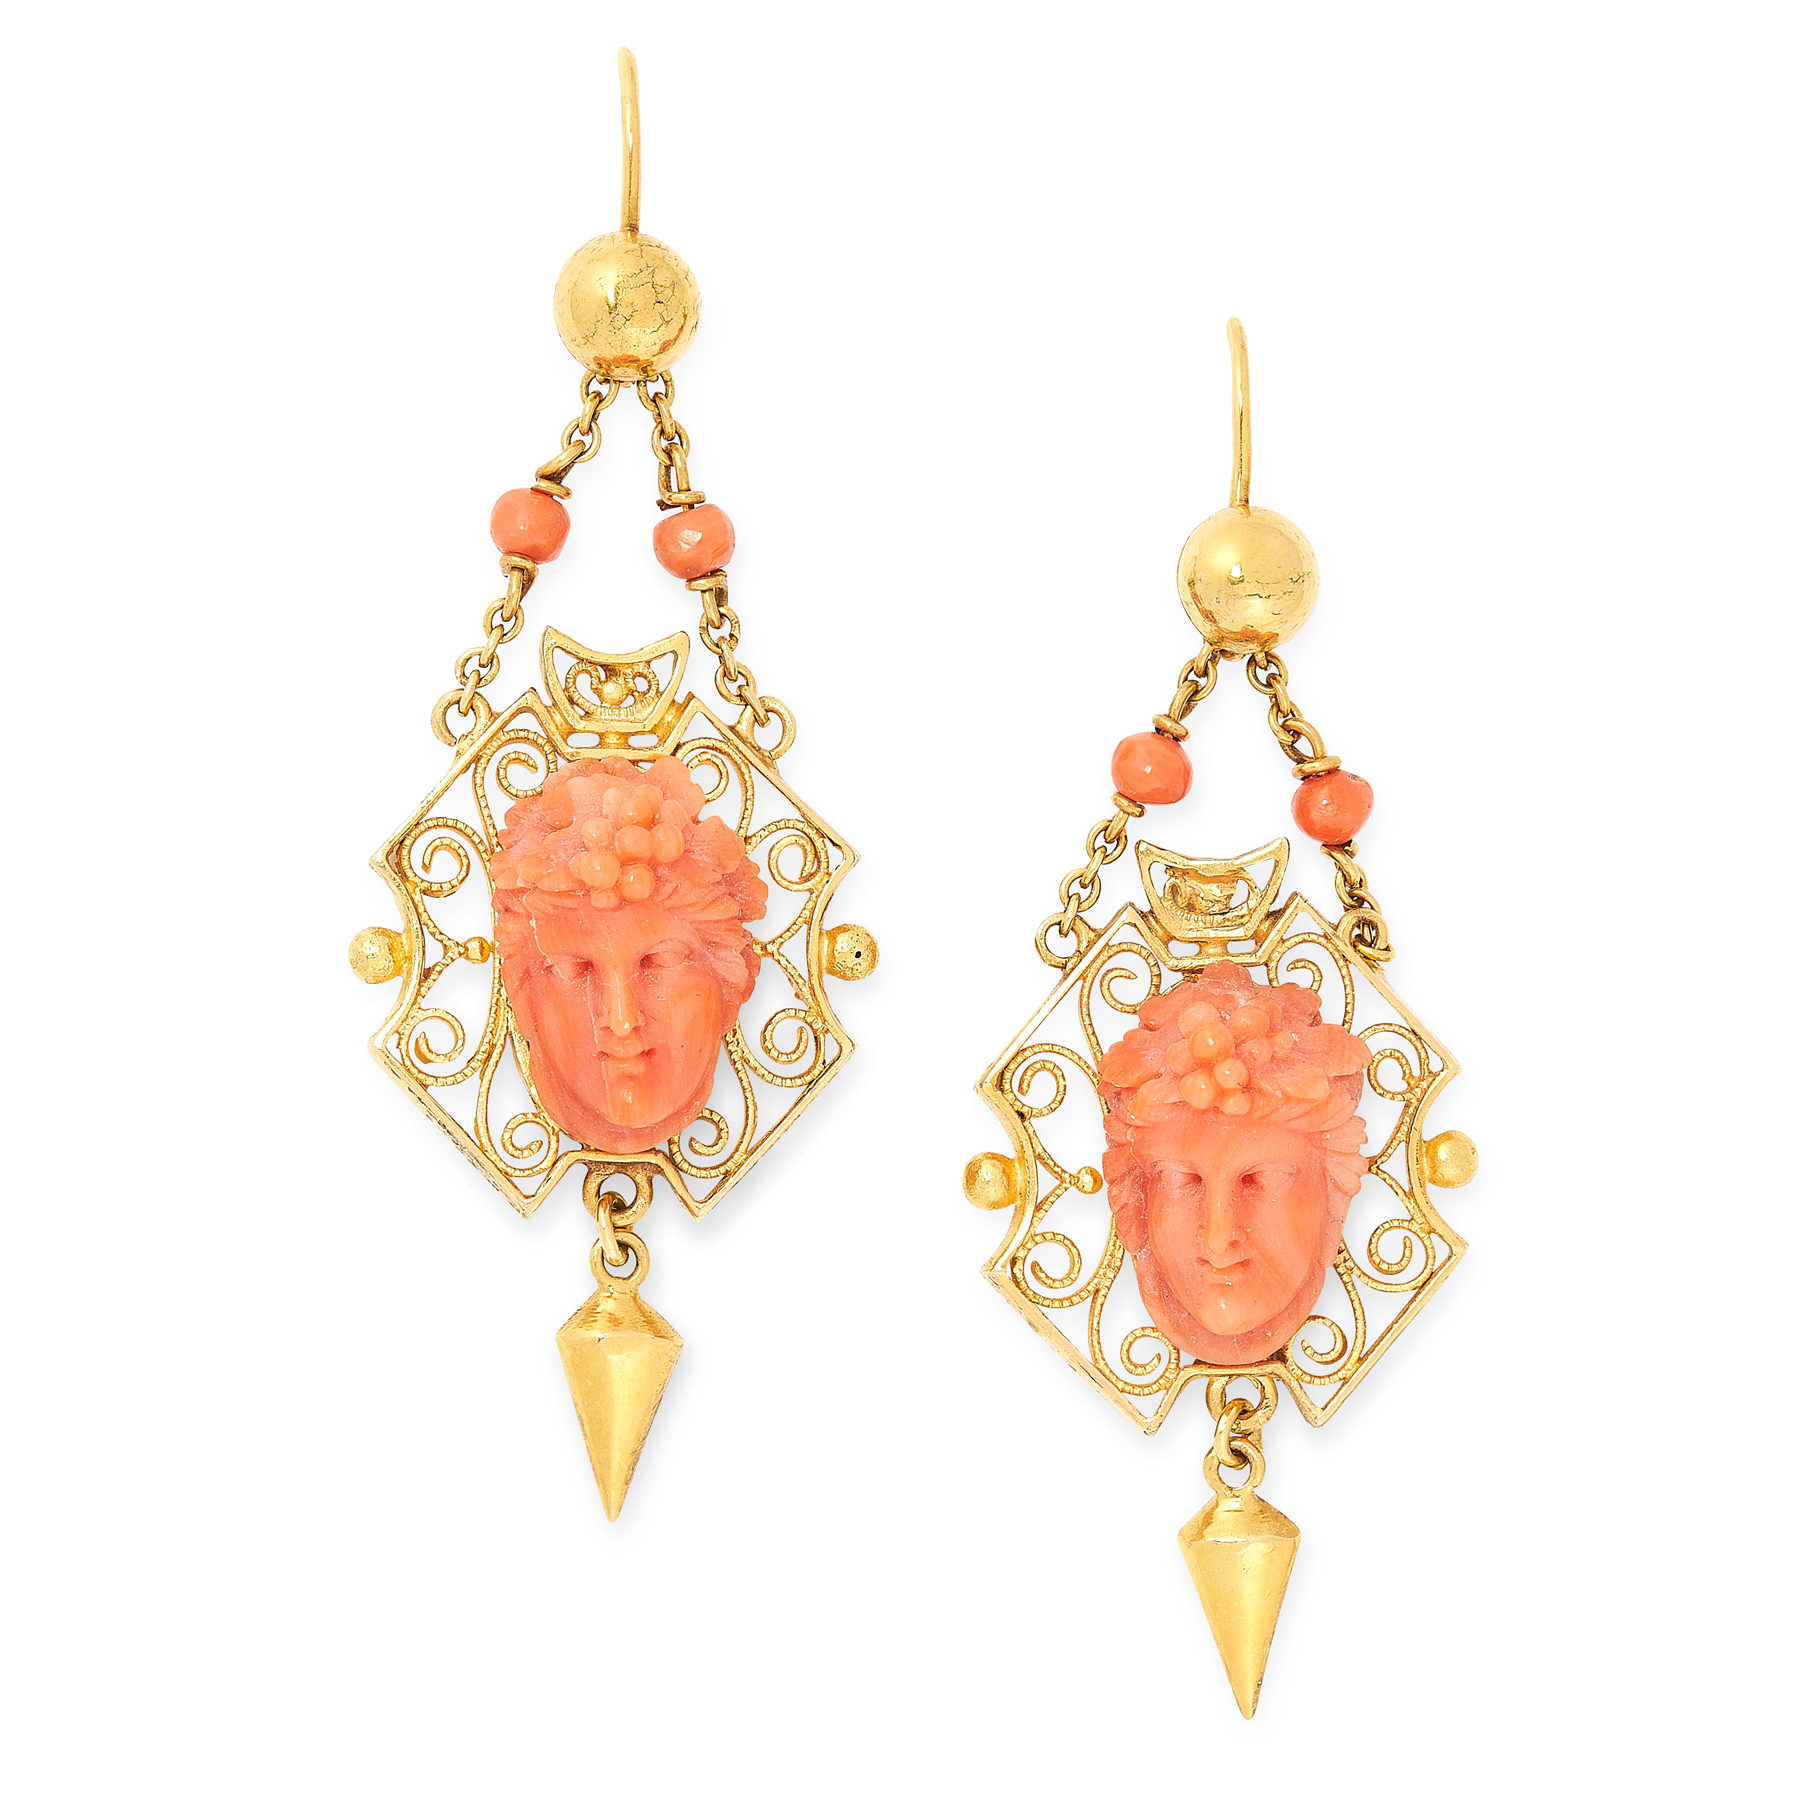 AN ANTIQUE CARVED CORAL DEMI PARURE, 19TH CENTURY in high carat yellow gold, comprising a brooch / - Image 2 of 2